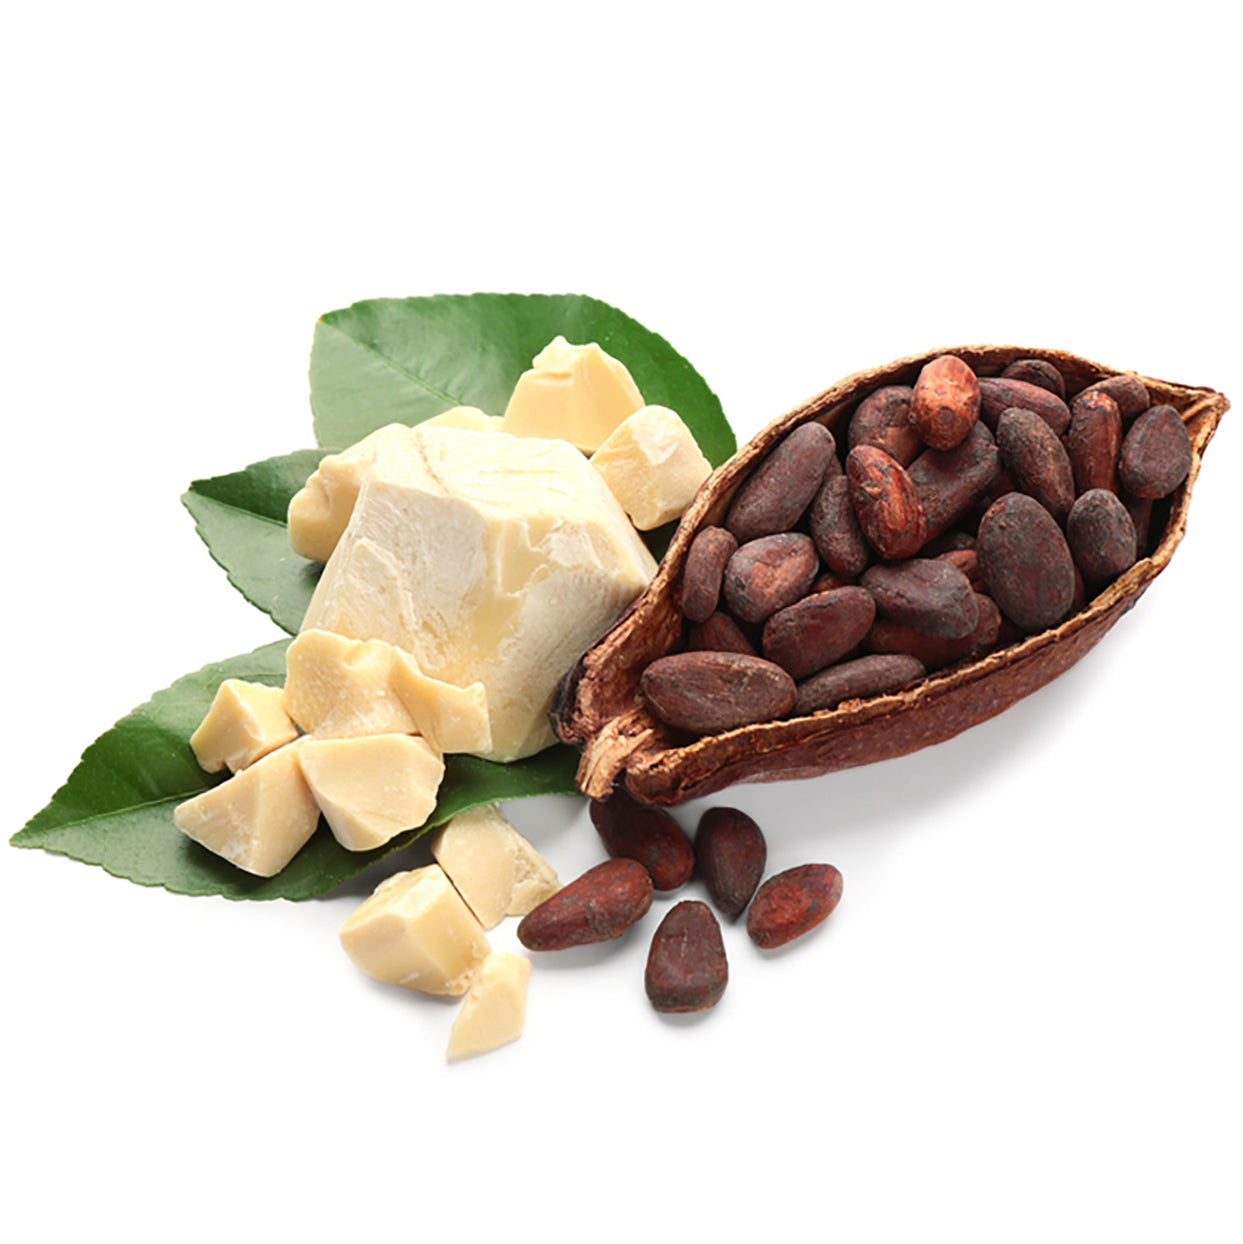 Cocoa pod, bean and butter